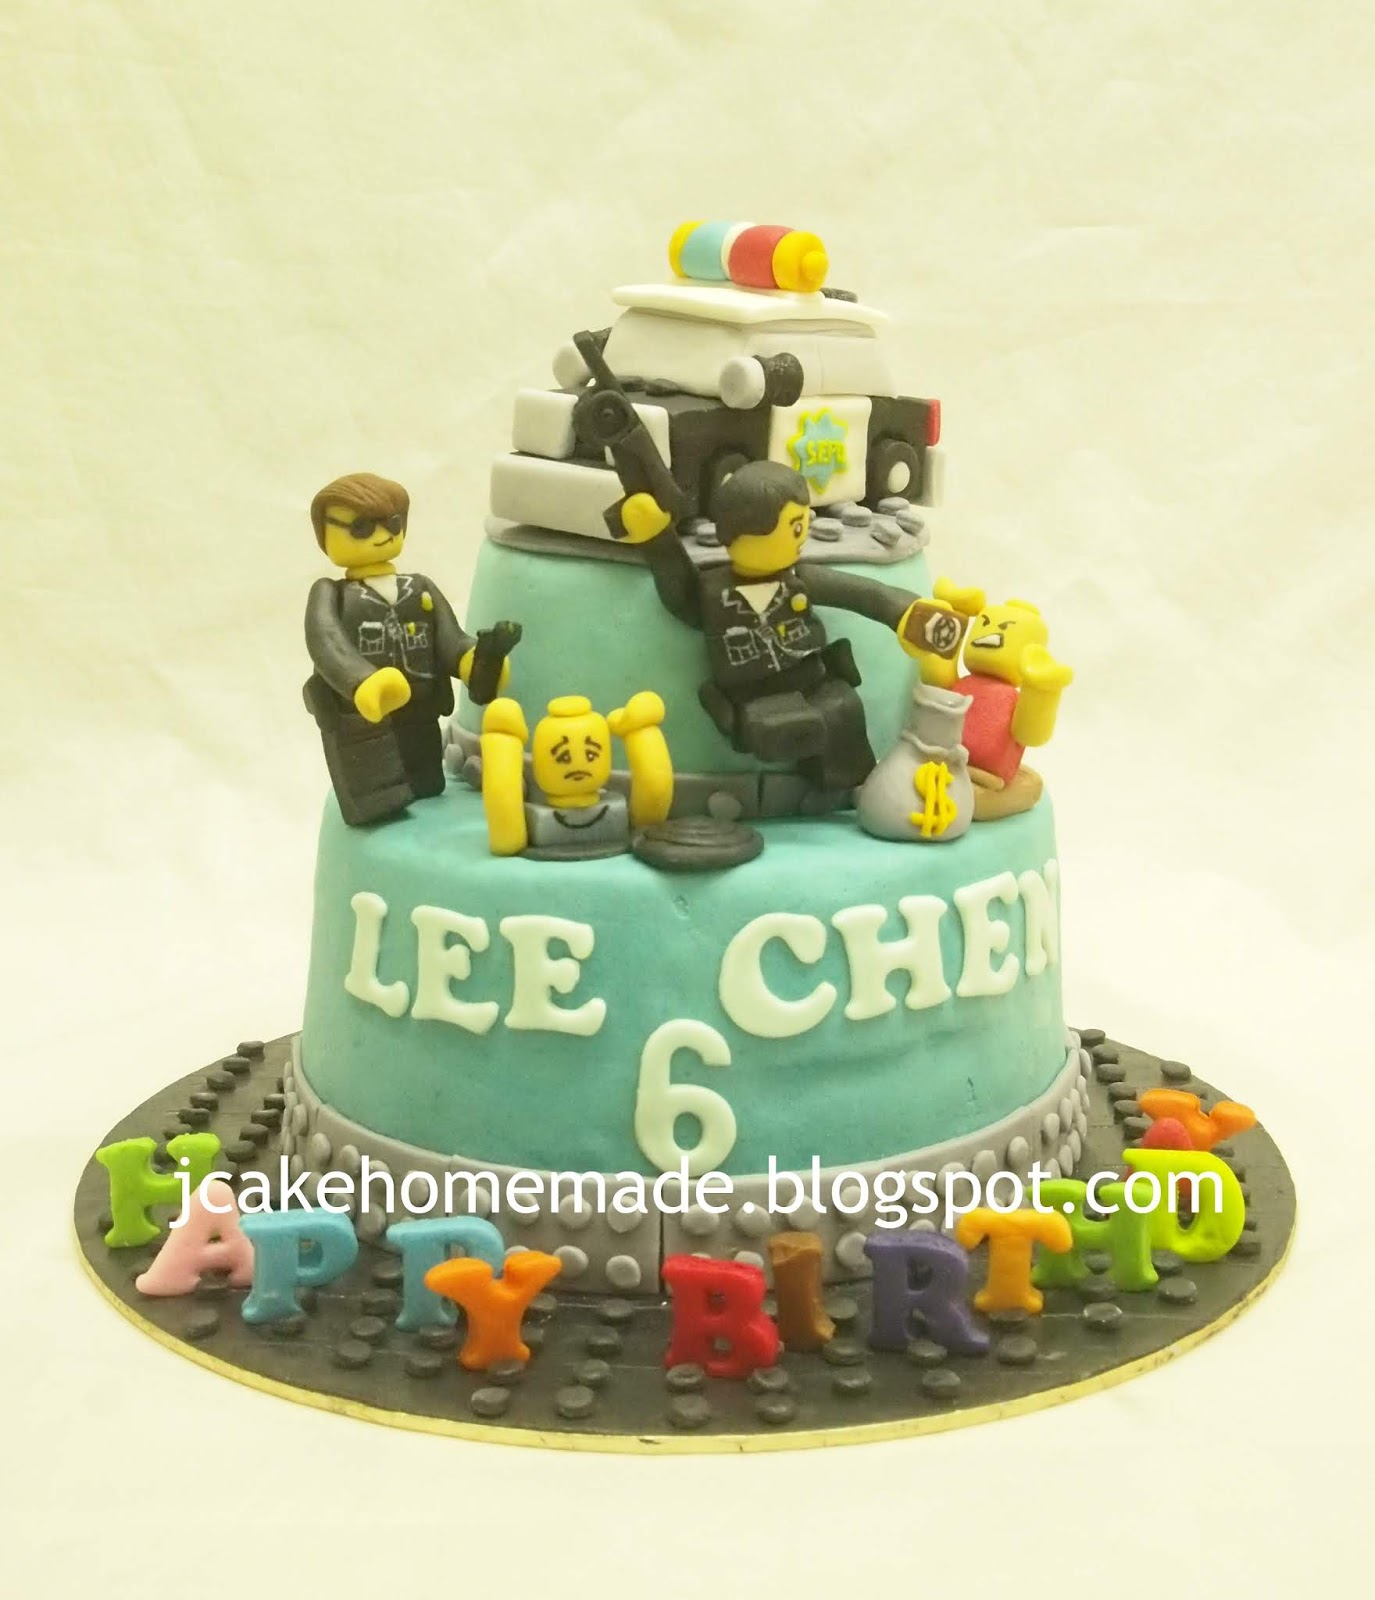 Terrific Jcakehomemade Lego Police Birthday Cake Funny Birthday Cards Online Alyptdamsfinfo